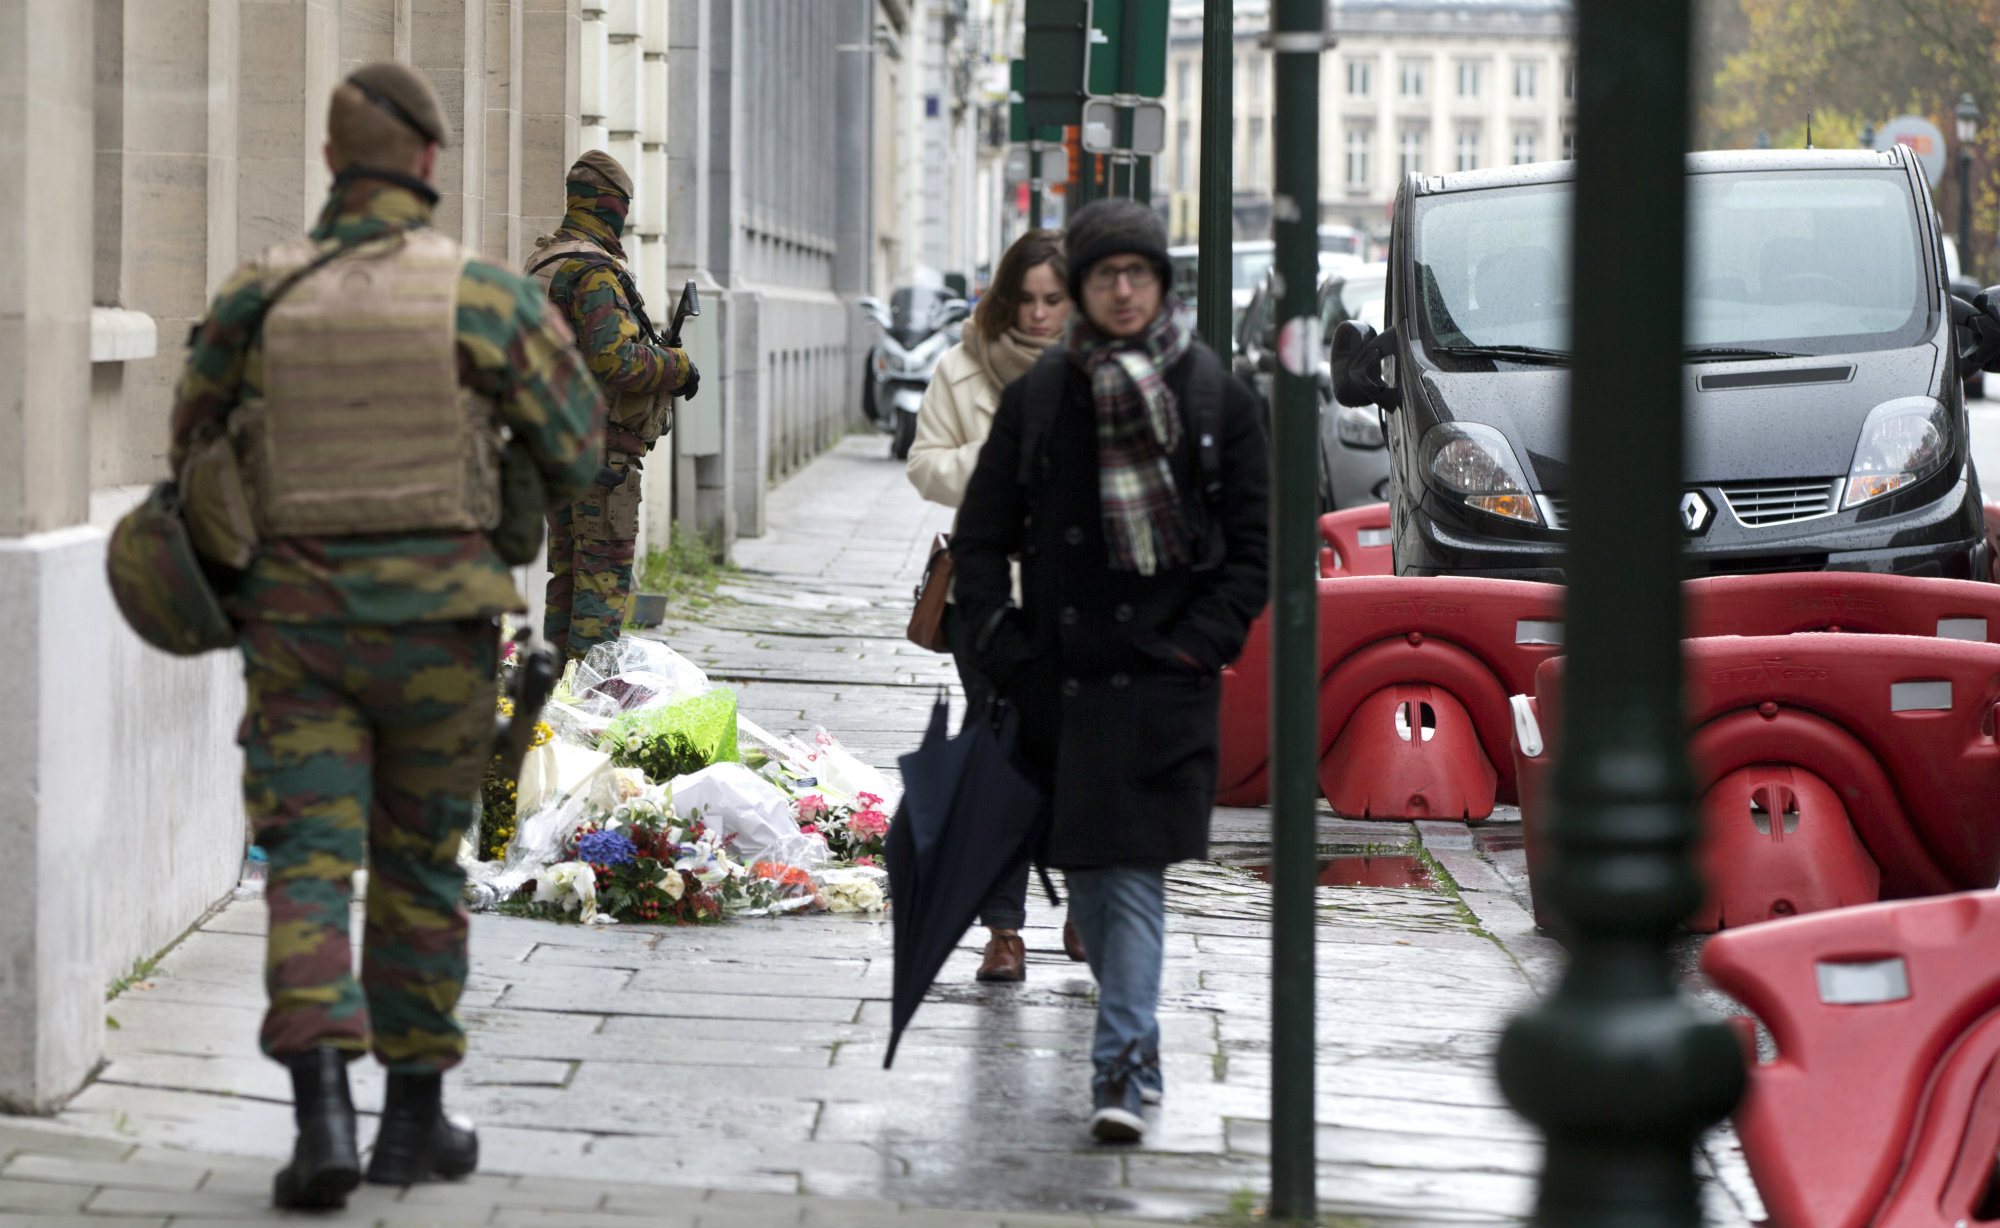 Belgian Army soldiers patrol next to flowers left outside of the French Consulates office in Brussels Saturday, Nov. 21, 2015. Belgium raised it security level to it's highest degree on Saturday as the manhunt continues for extremist Salah Abdeslam who took part in the Paris attacks.